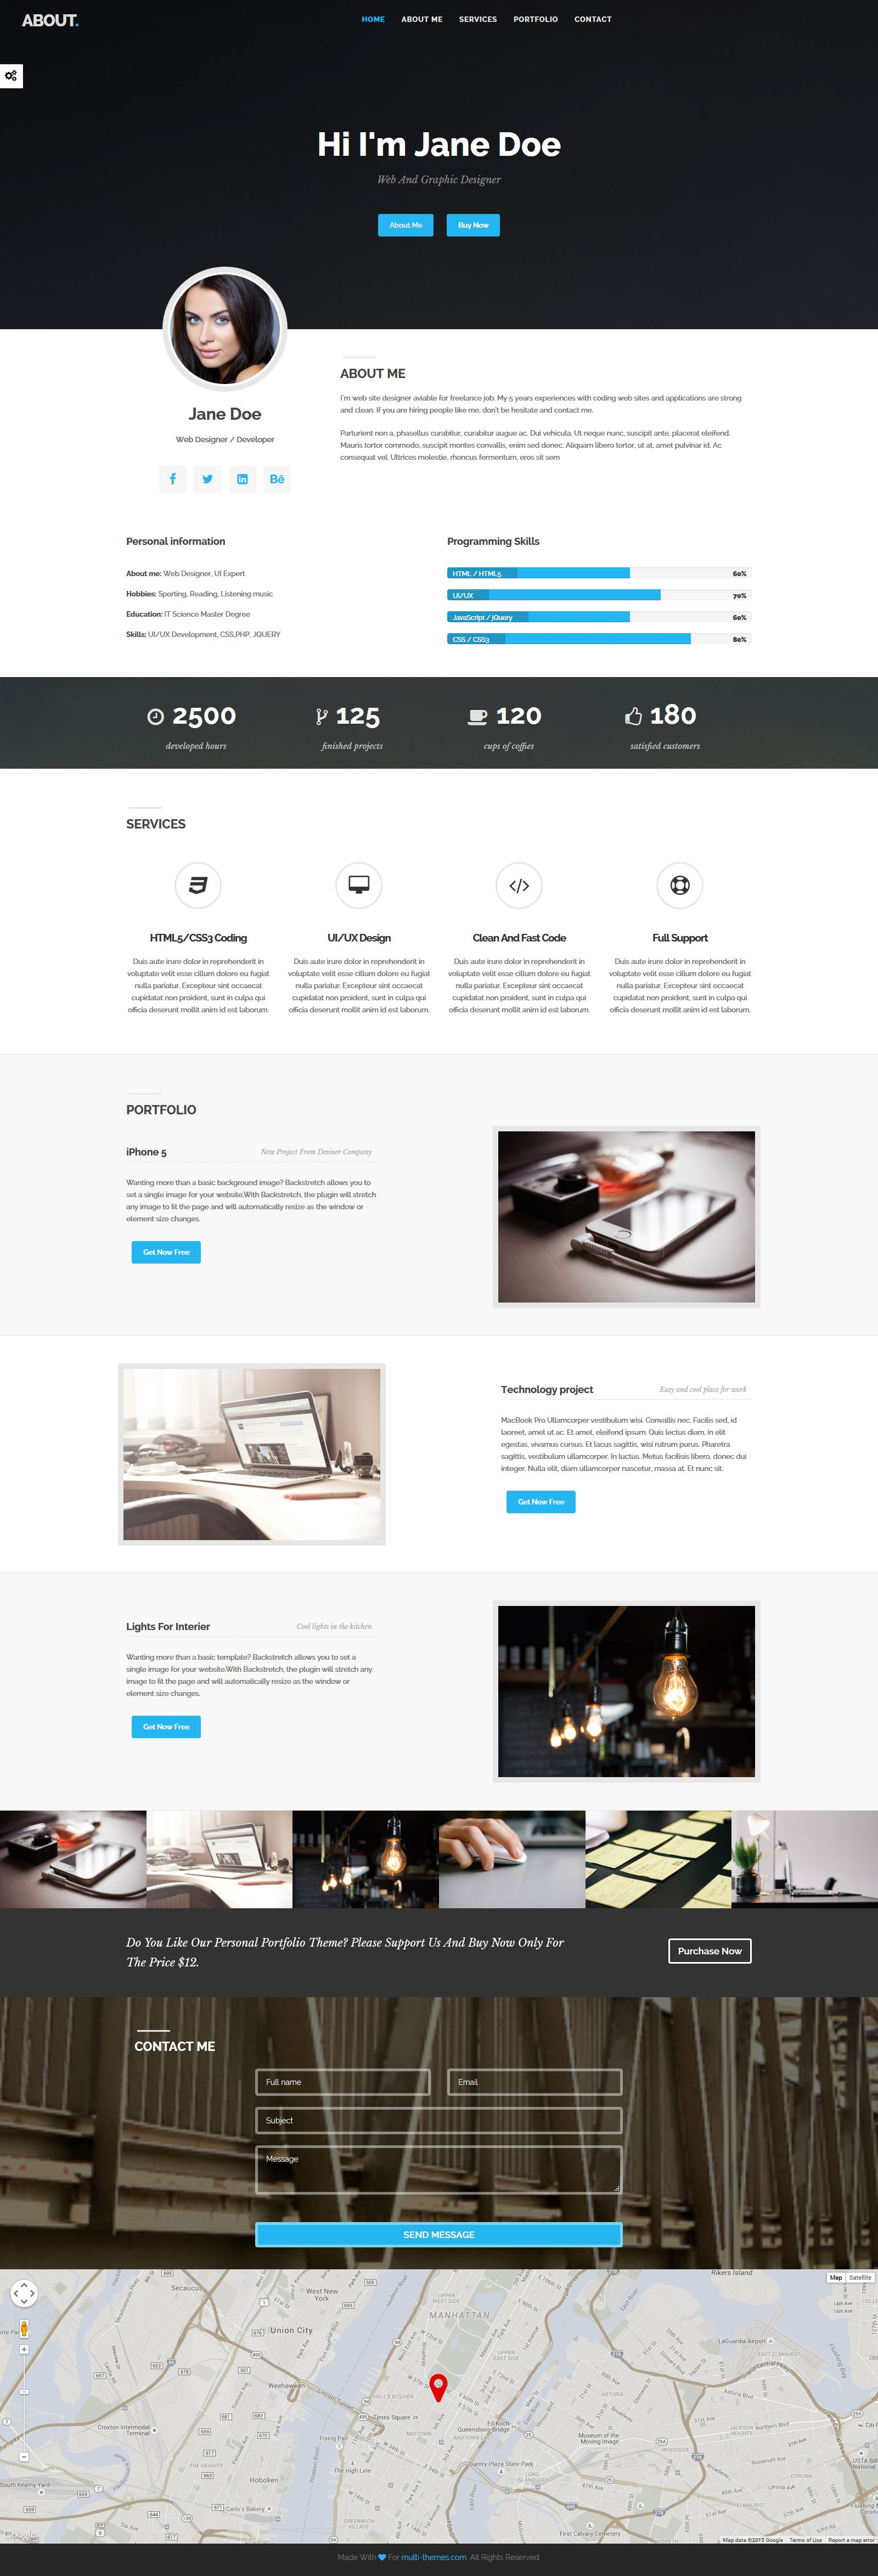 About - HTML Bootstrap Resume Portfolio Theme Screenshot 1